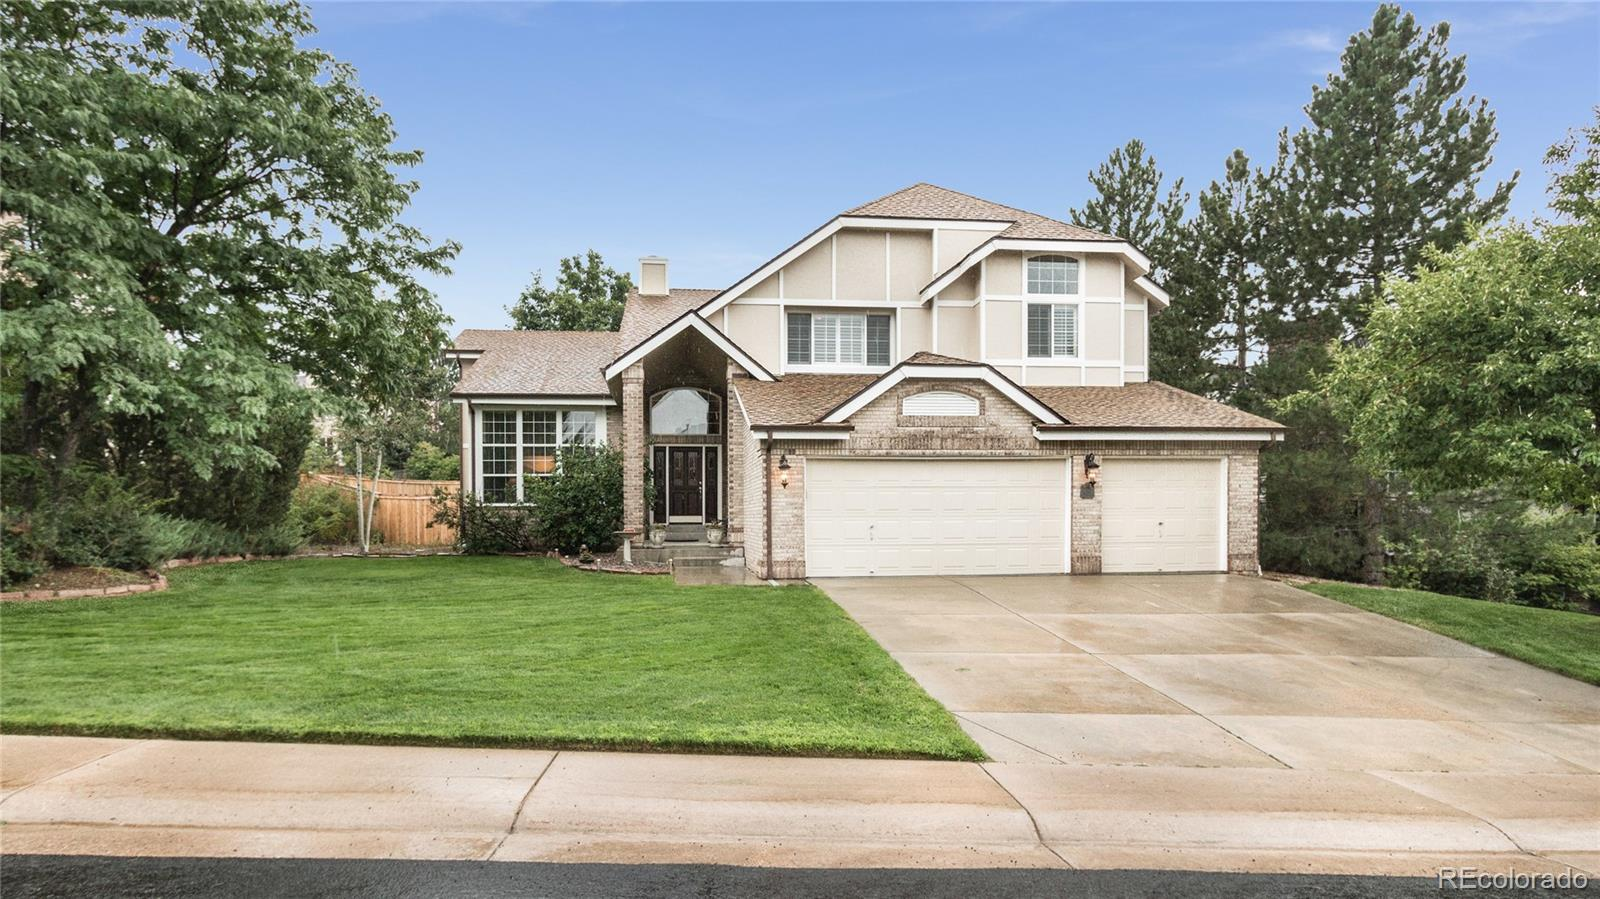 2390 Wynterbrook Drive, Highlands Ranch, CO 80126 - Highlands Ranch, CO real estate listing